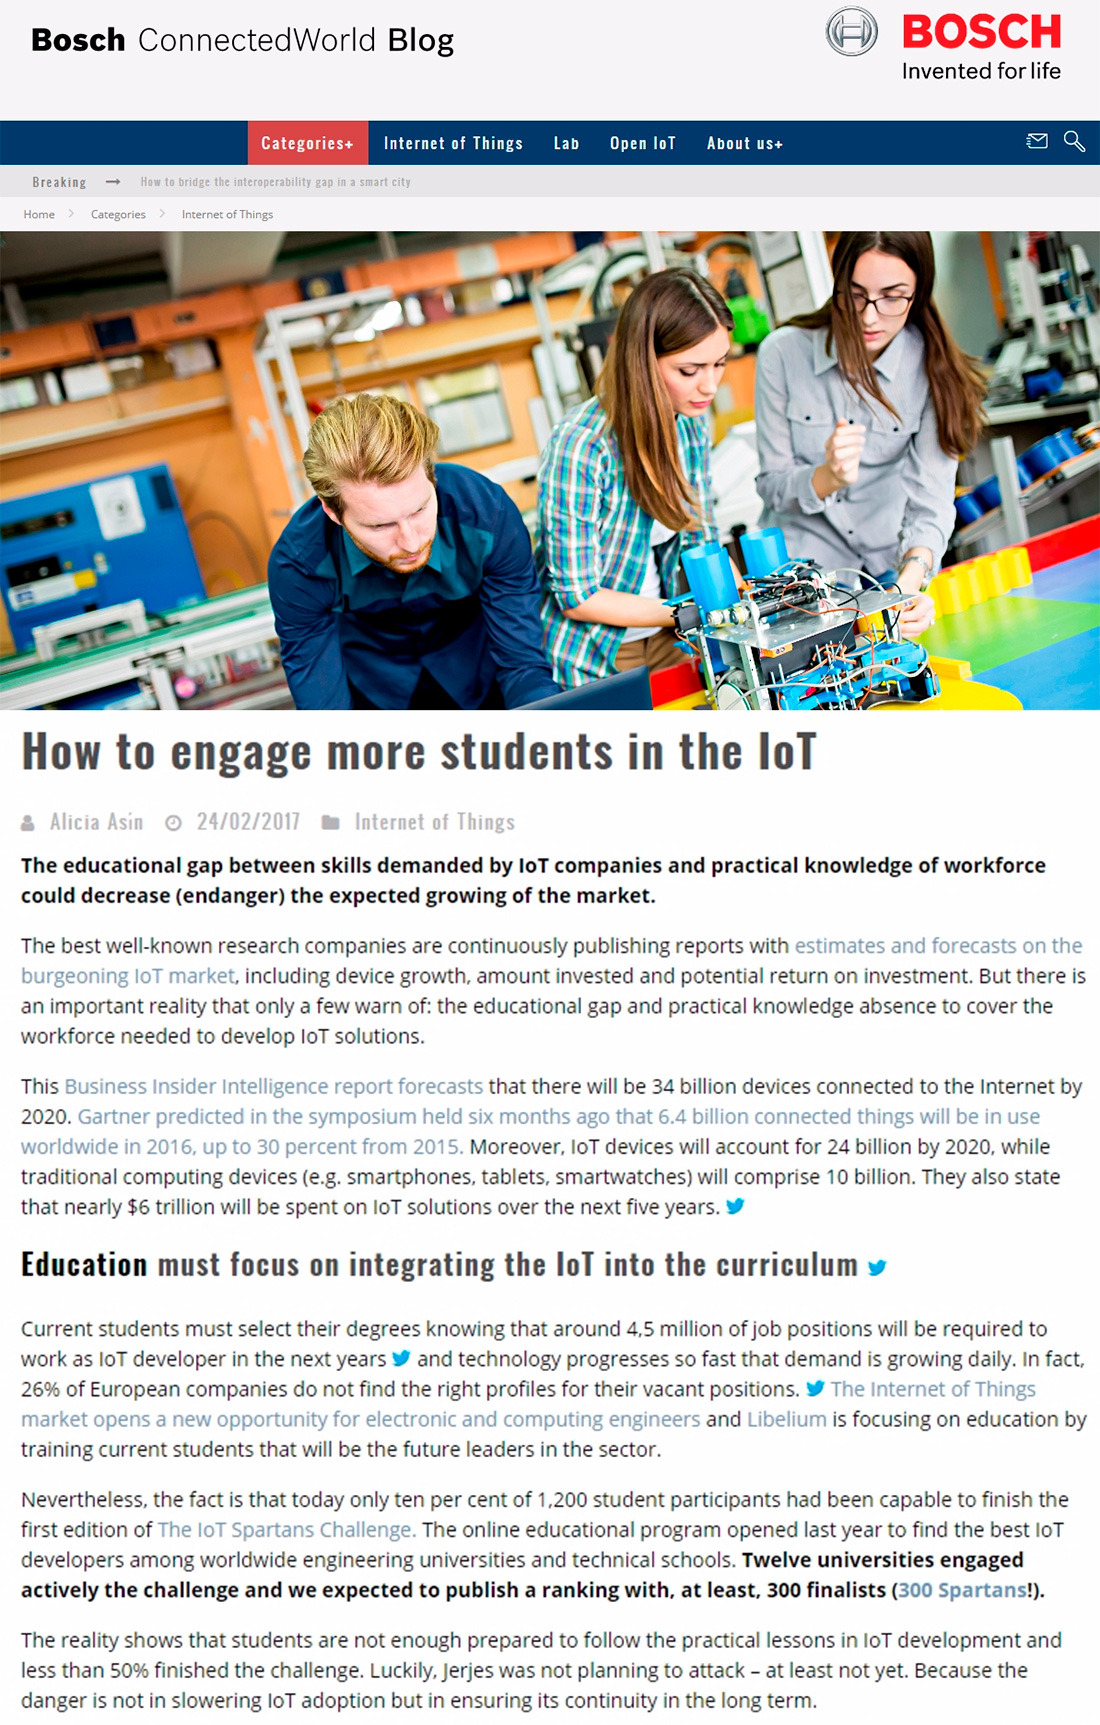 Bosch ConnectedWorld Blog – How to engage more students in the IoT